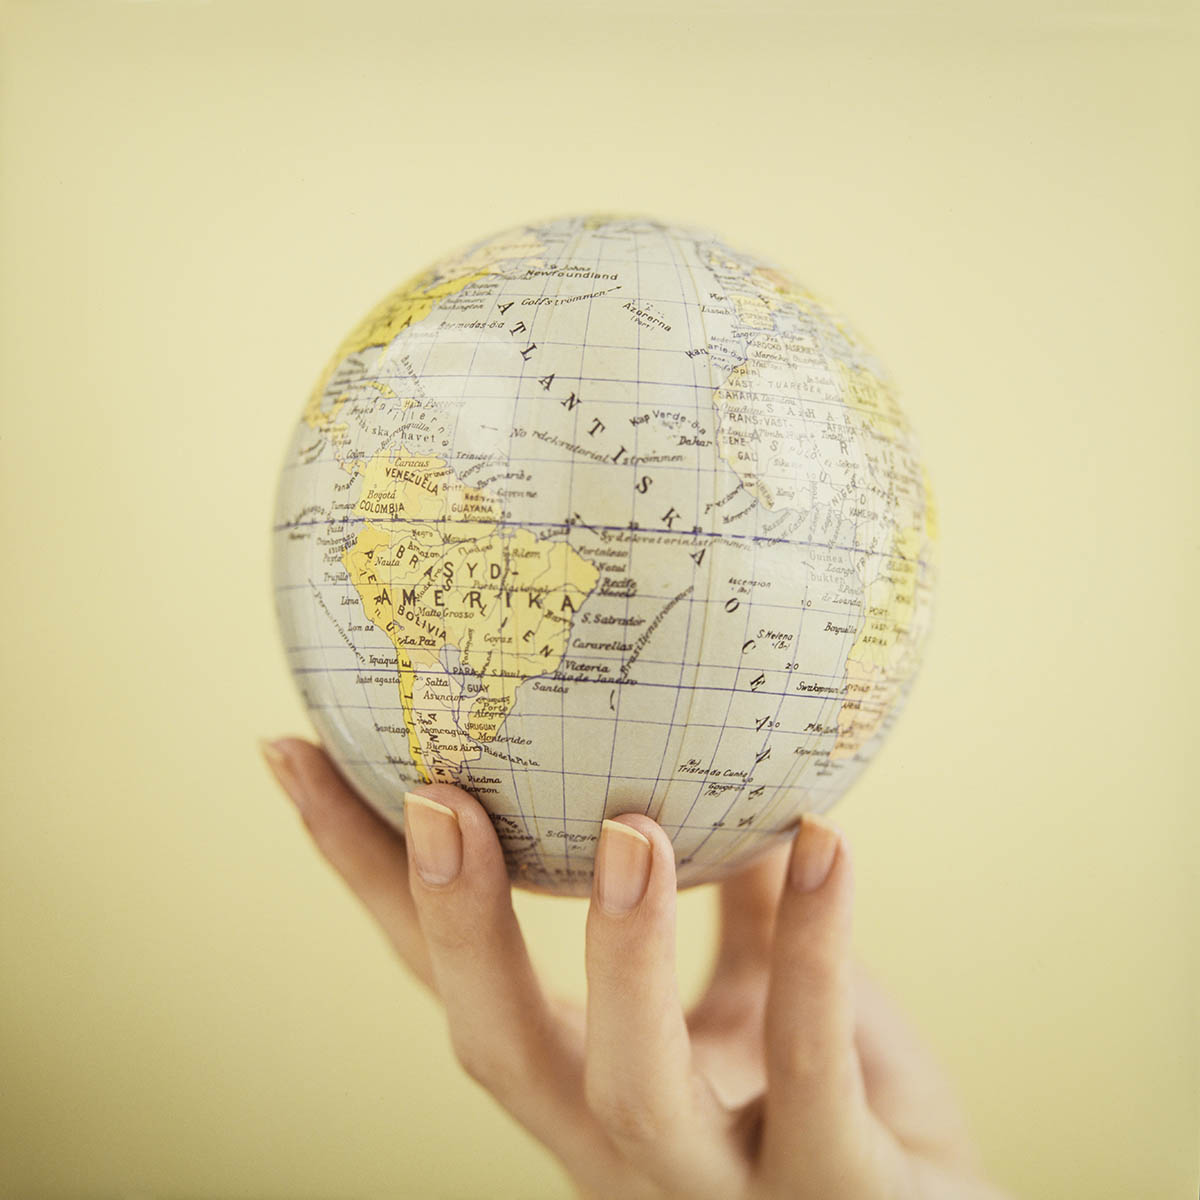 Free stock photo Woman's hand holding up a globe